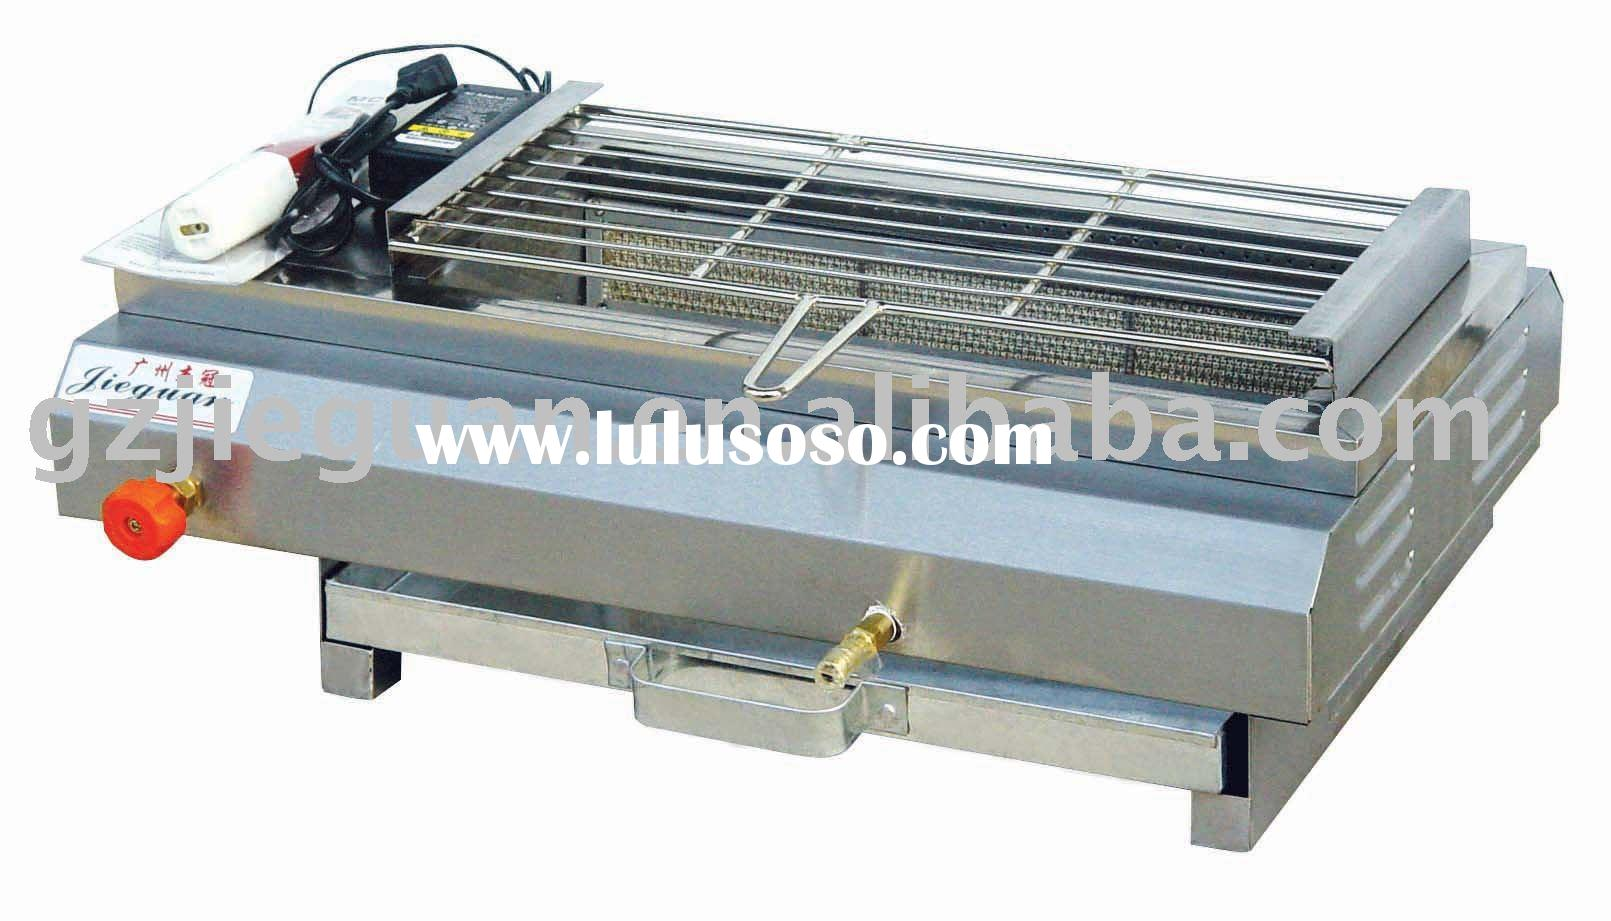 Stainless Steel Gas Barbecue Grill(GB-580)